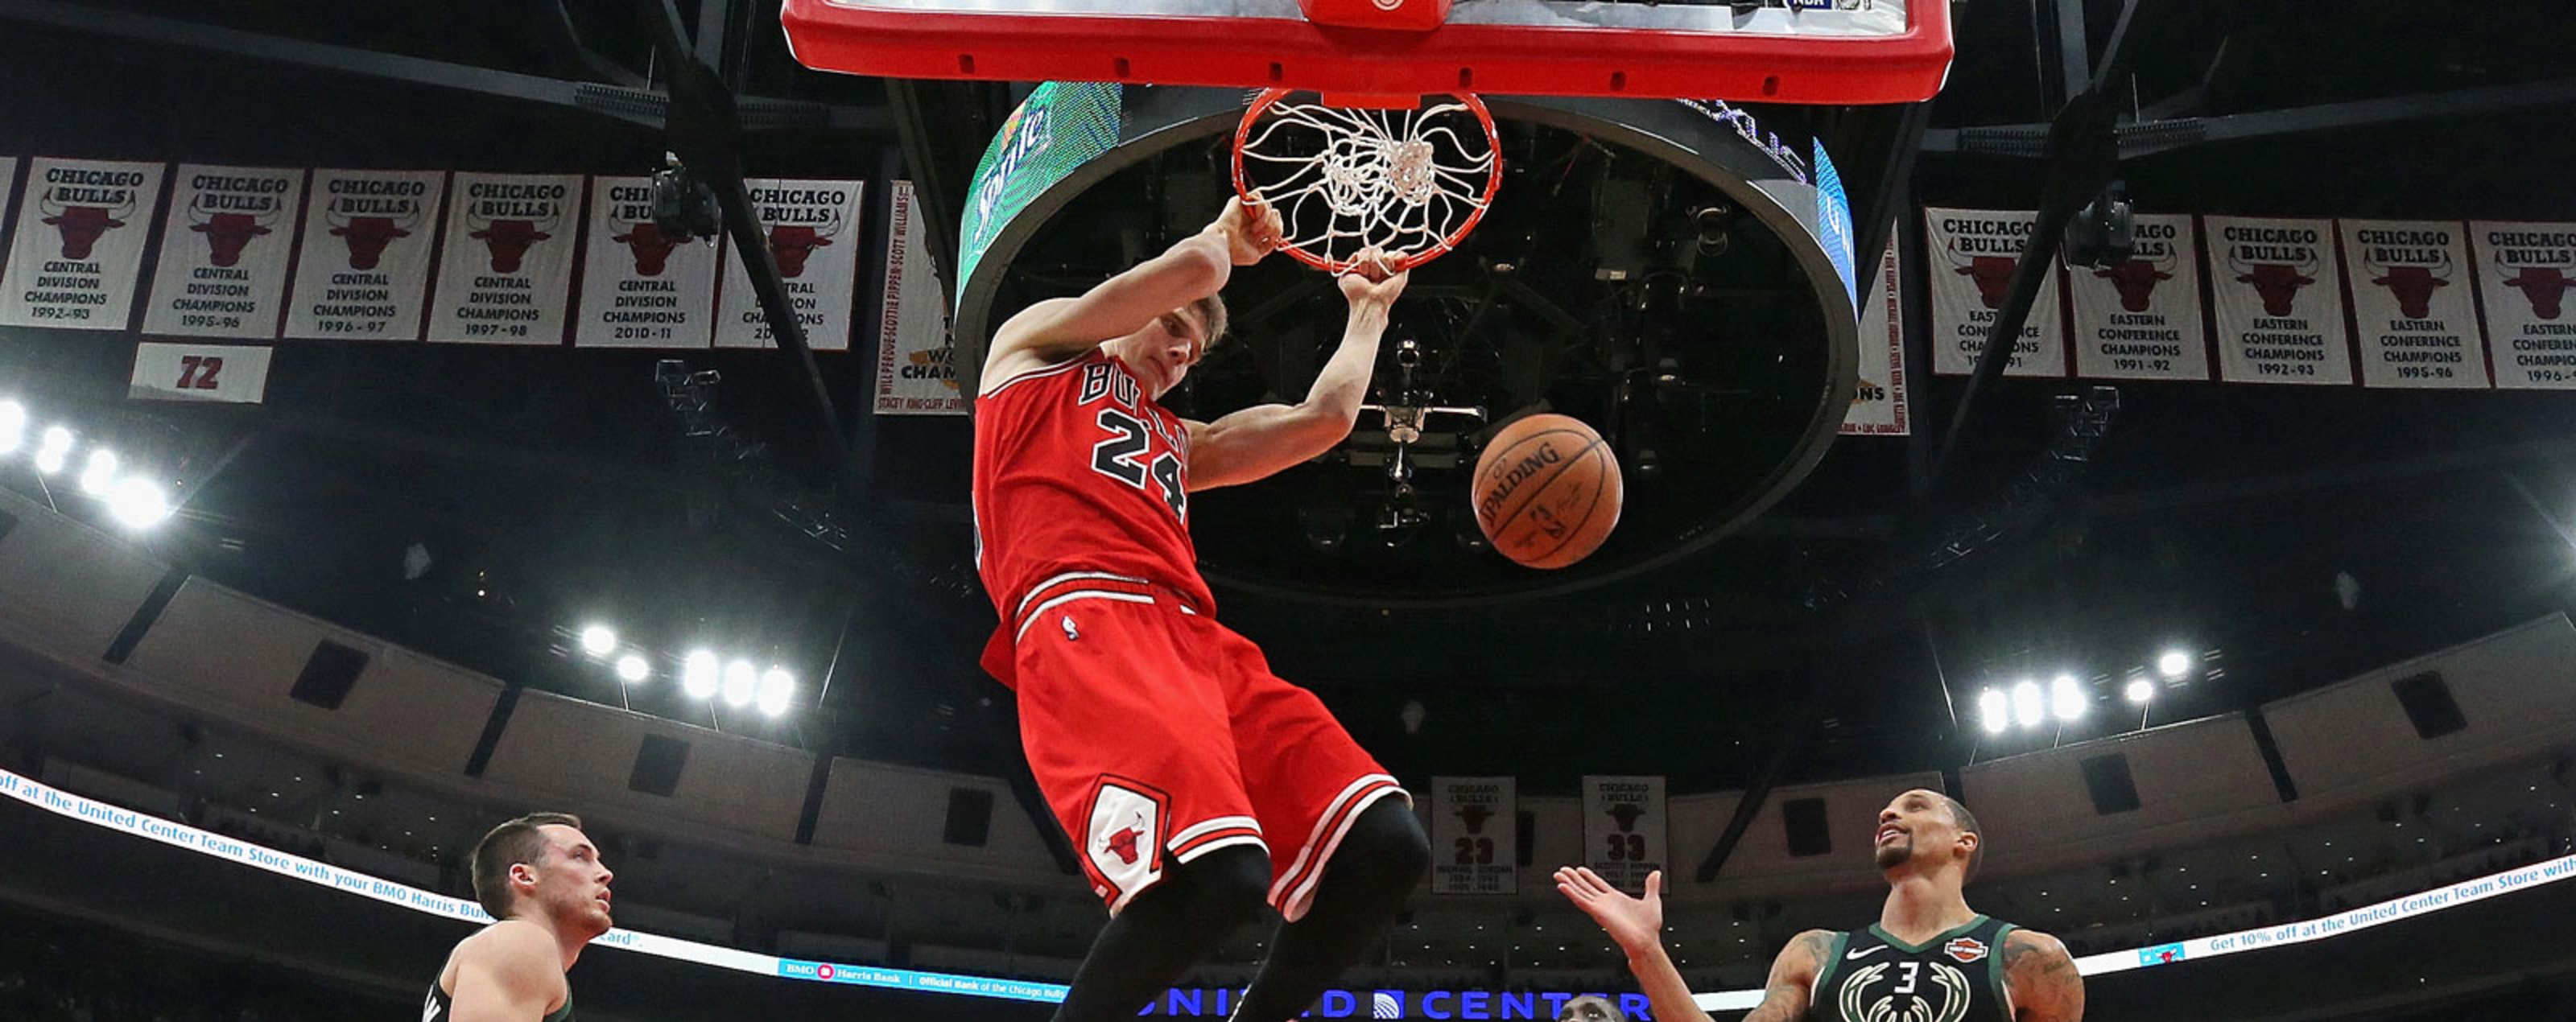 e69579fd086 Lauri Markkanen dunks the ball against the Milwaukee Bucks.